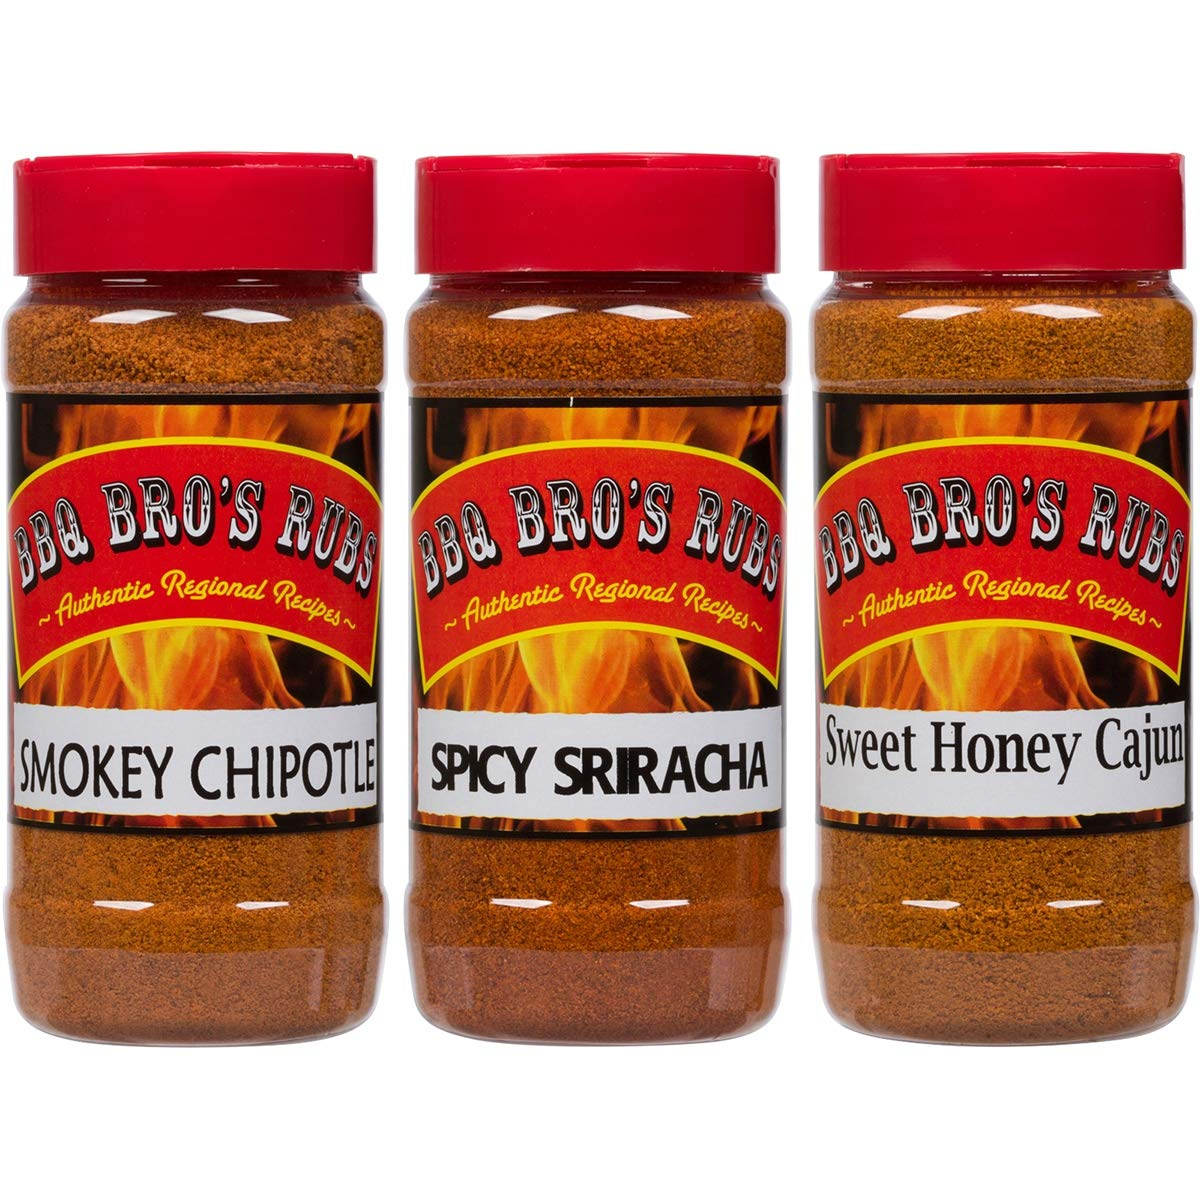 BBQ BROS RUBS {Sweet, Smokey, & Spicy Style } - Ultimate Barbecue Spices Seasoning Set - Use for Grilling, Cooking, Smoking - Meat Rub, Dry Marinade, Rib Rub - Backed with 100% Customer Guarantee